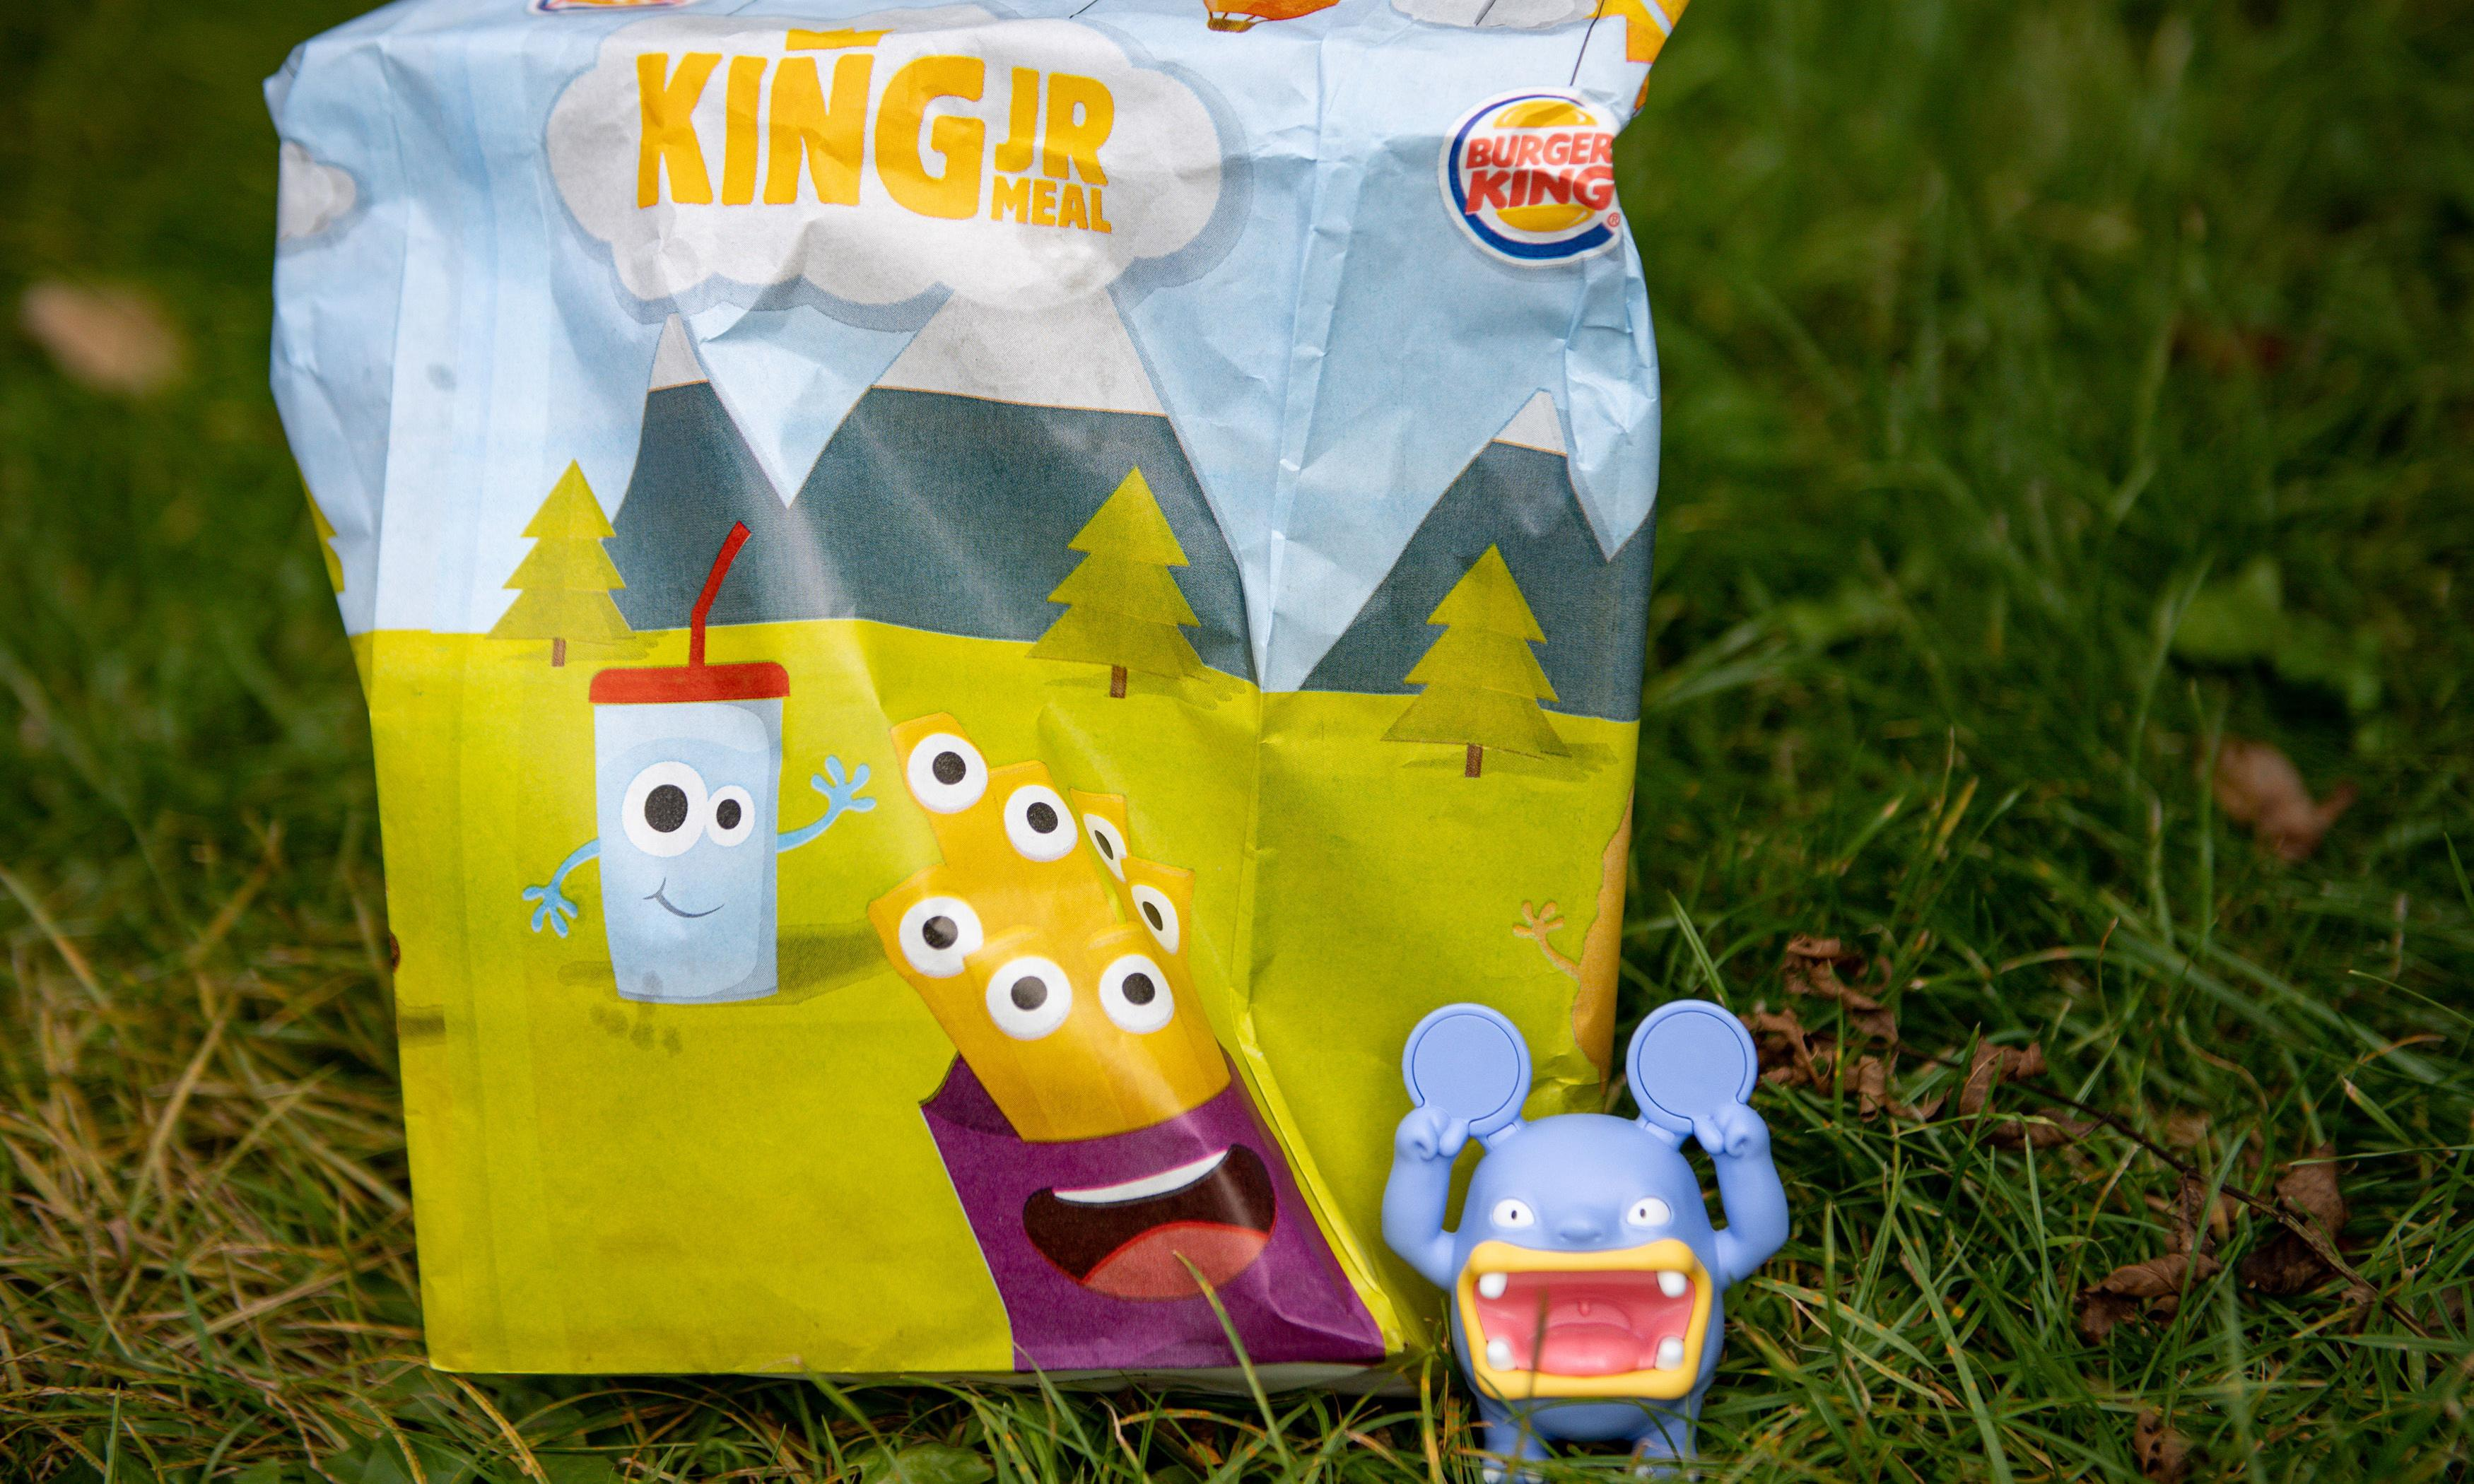 Burger King is giving up on free plastic toys for kids – when will others follow?